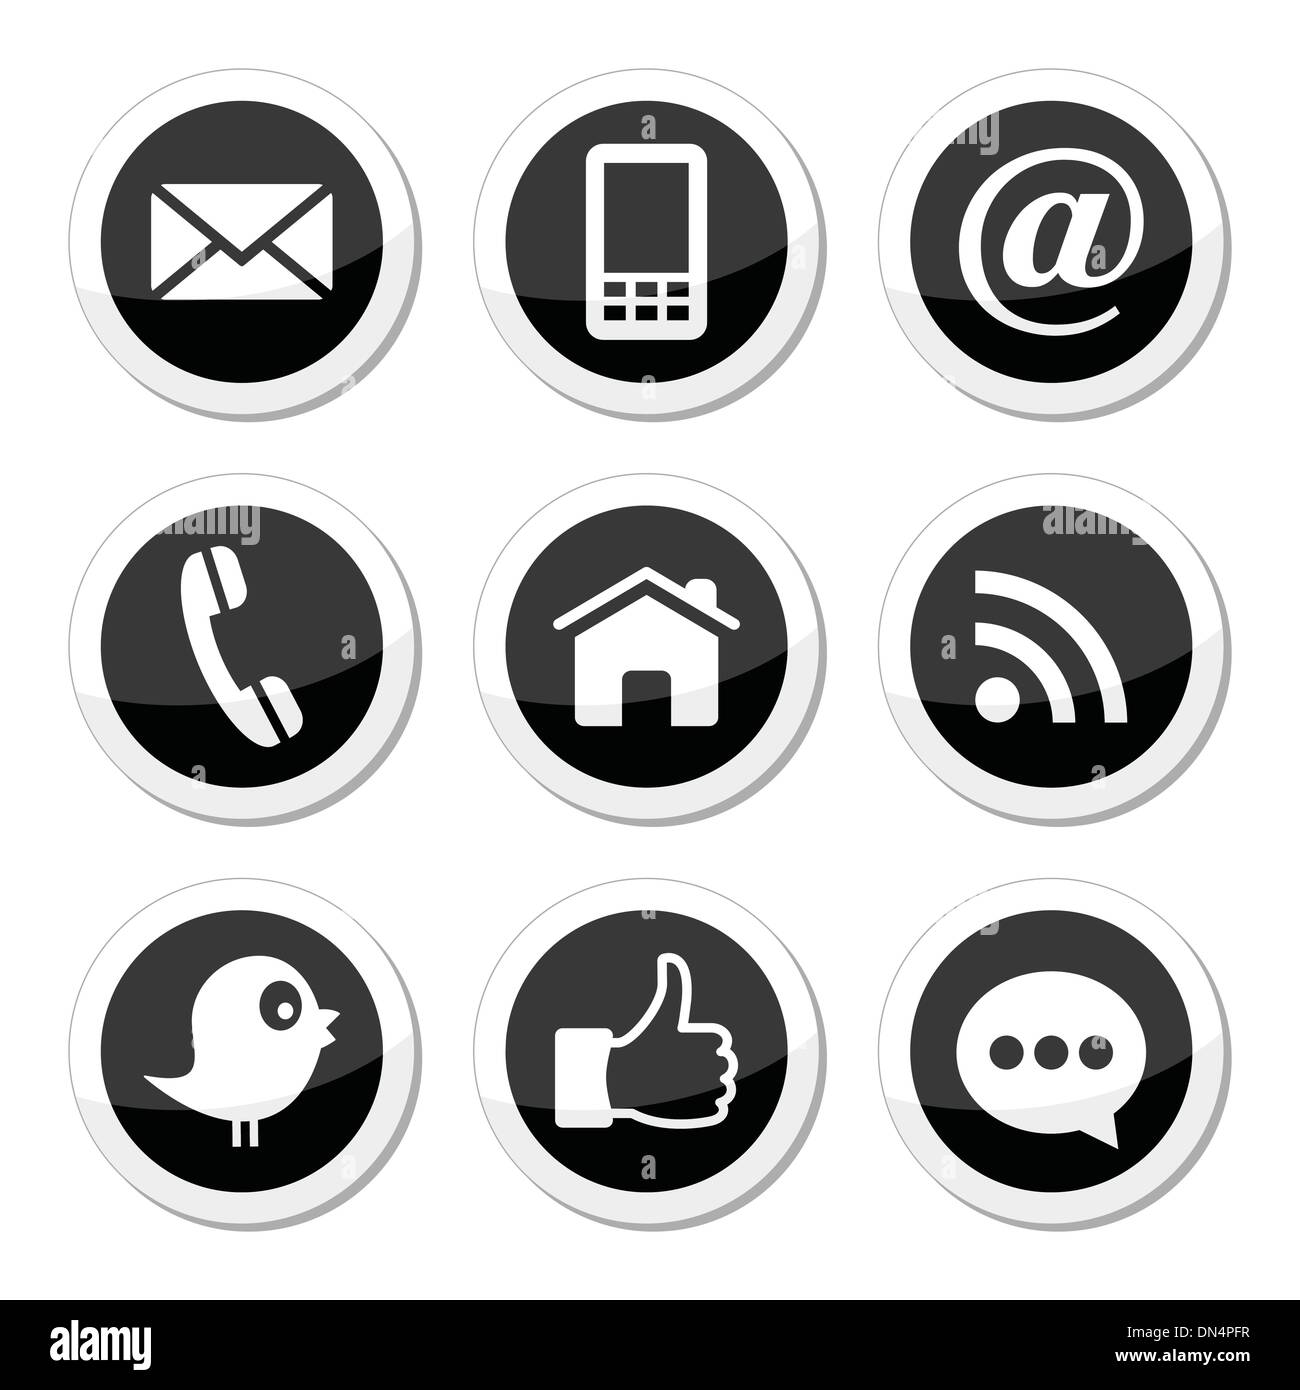 Contact, web, blog and social media round icons - twitter, facebook, rss - Stock Image